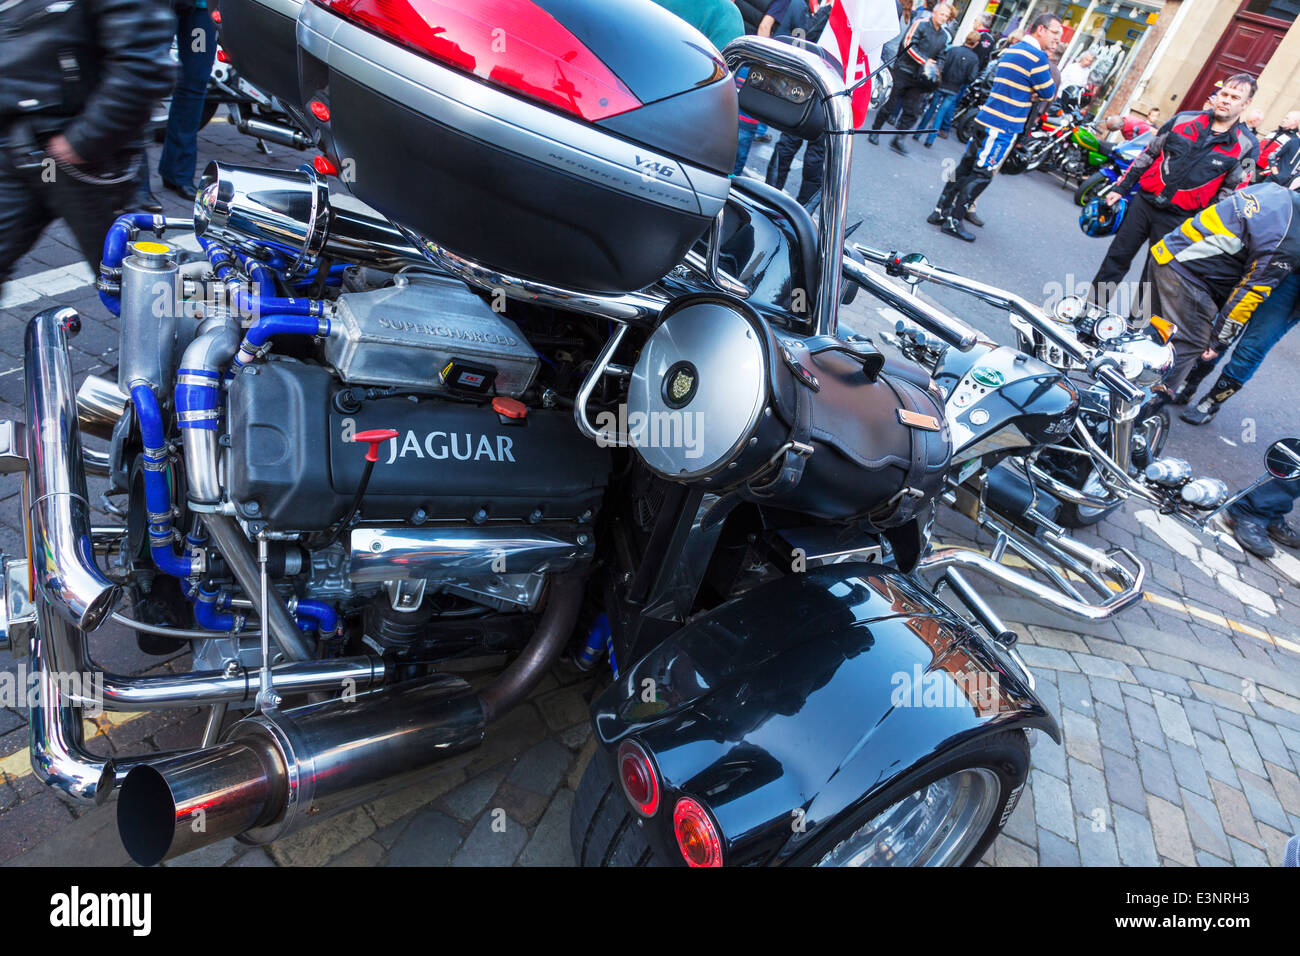 Motorbike Parts Stockfotos & Motorbike Parts Bilder - Alamy